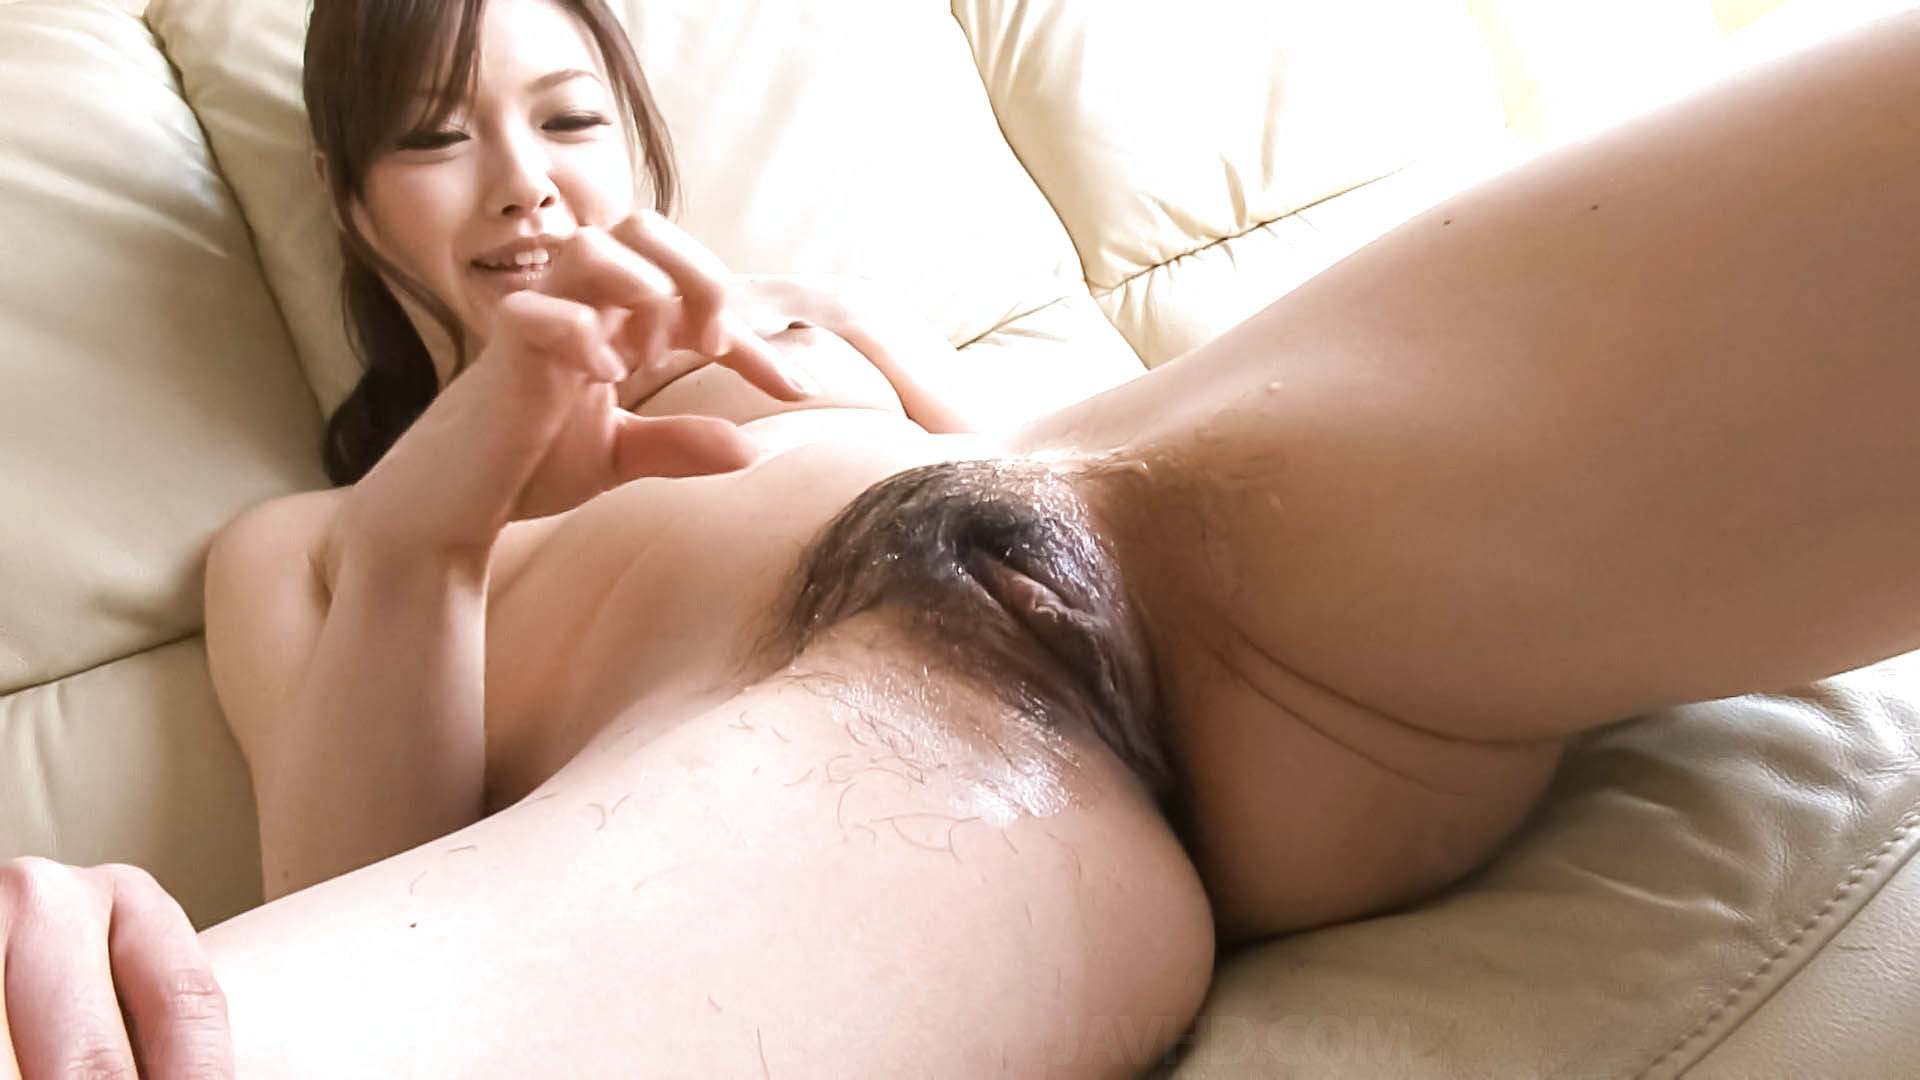 asian-girls-porn-videos-orgasm-denial-you-tube